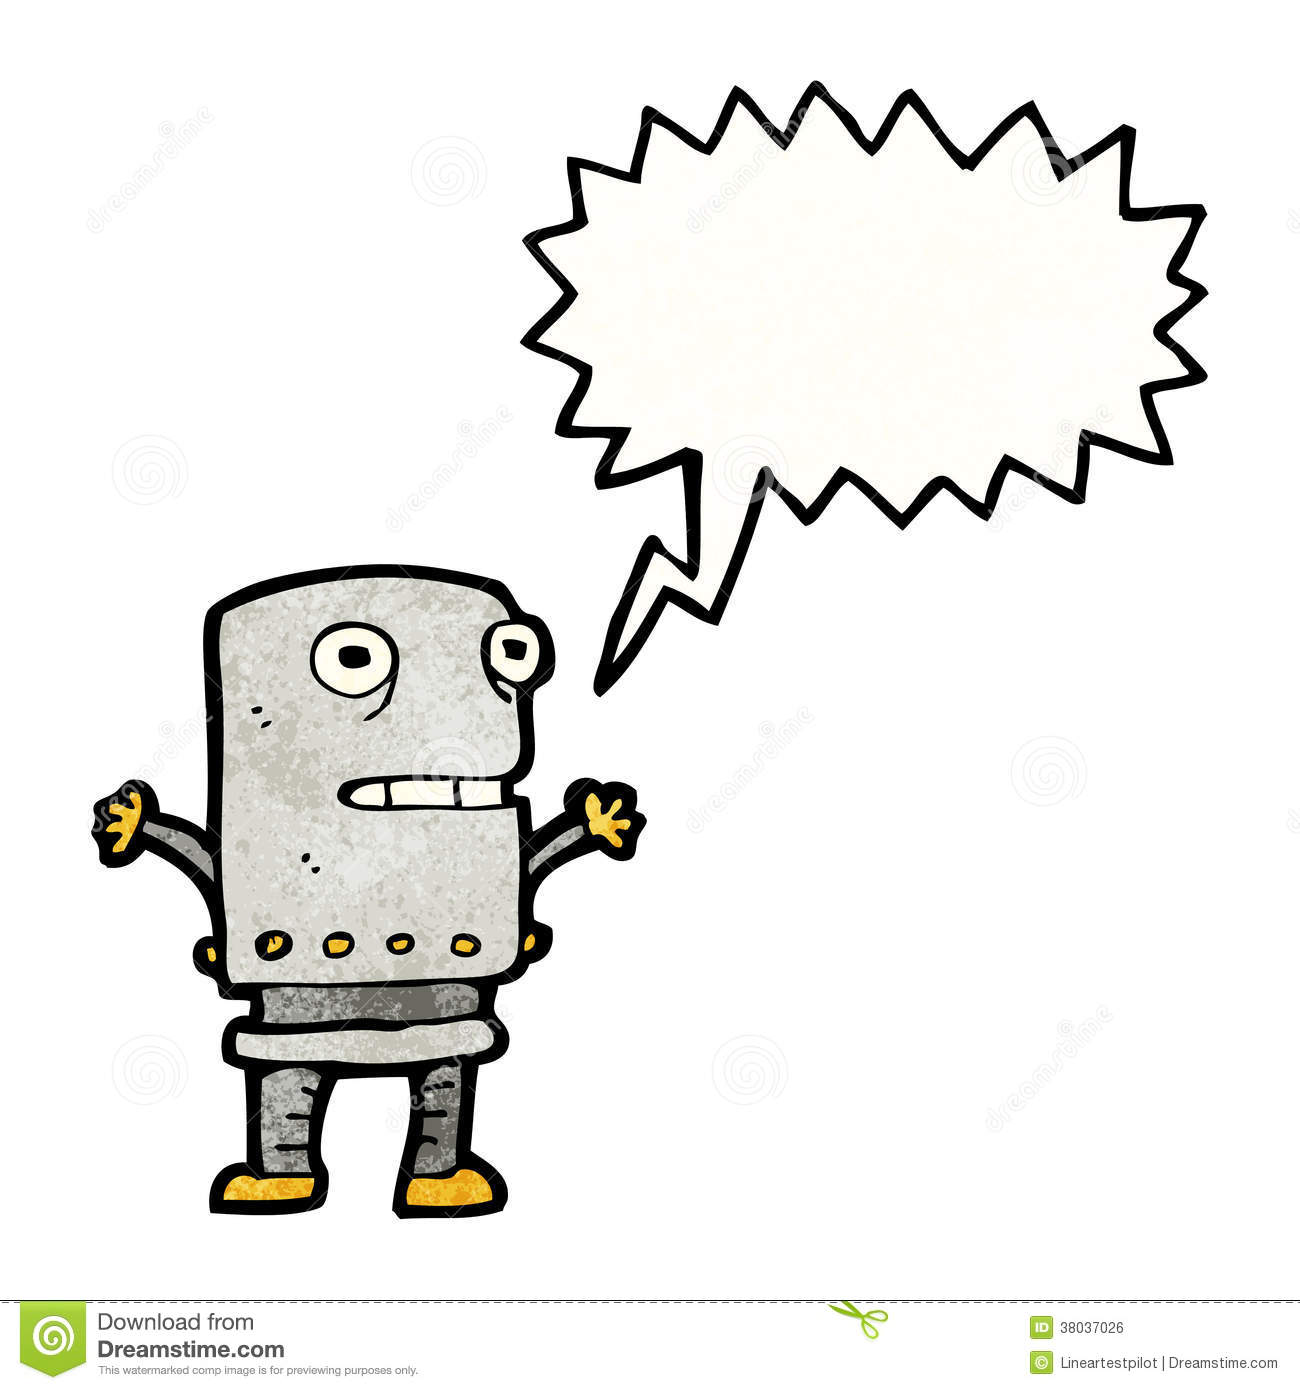 ... similar stock images of ` cartoon funny robot with speech bubble